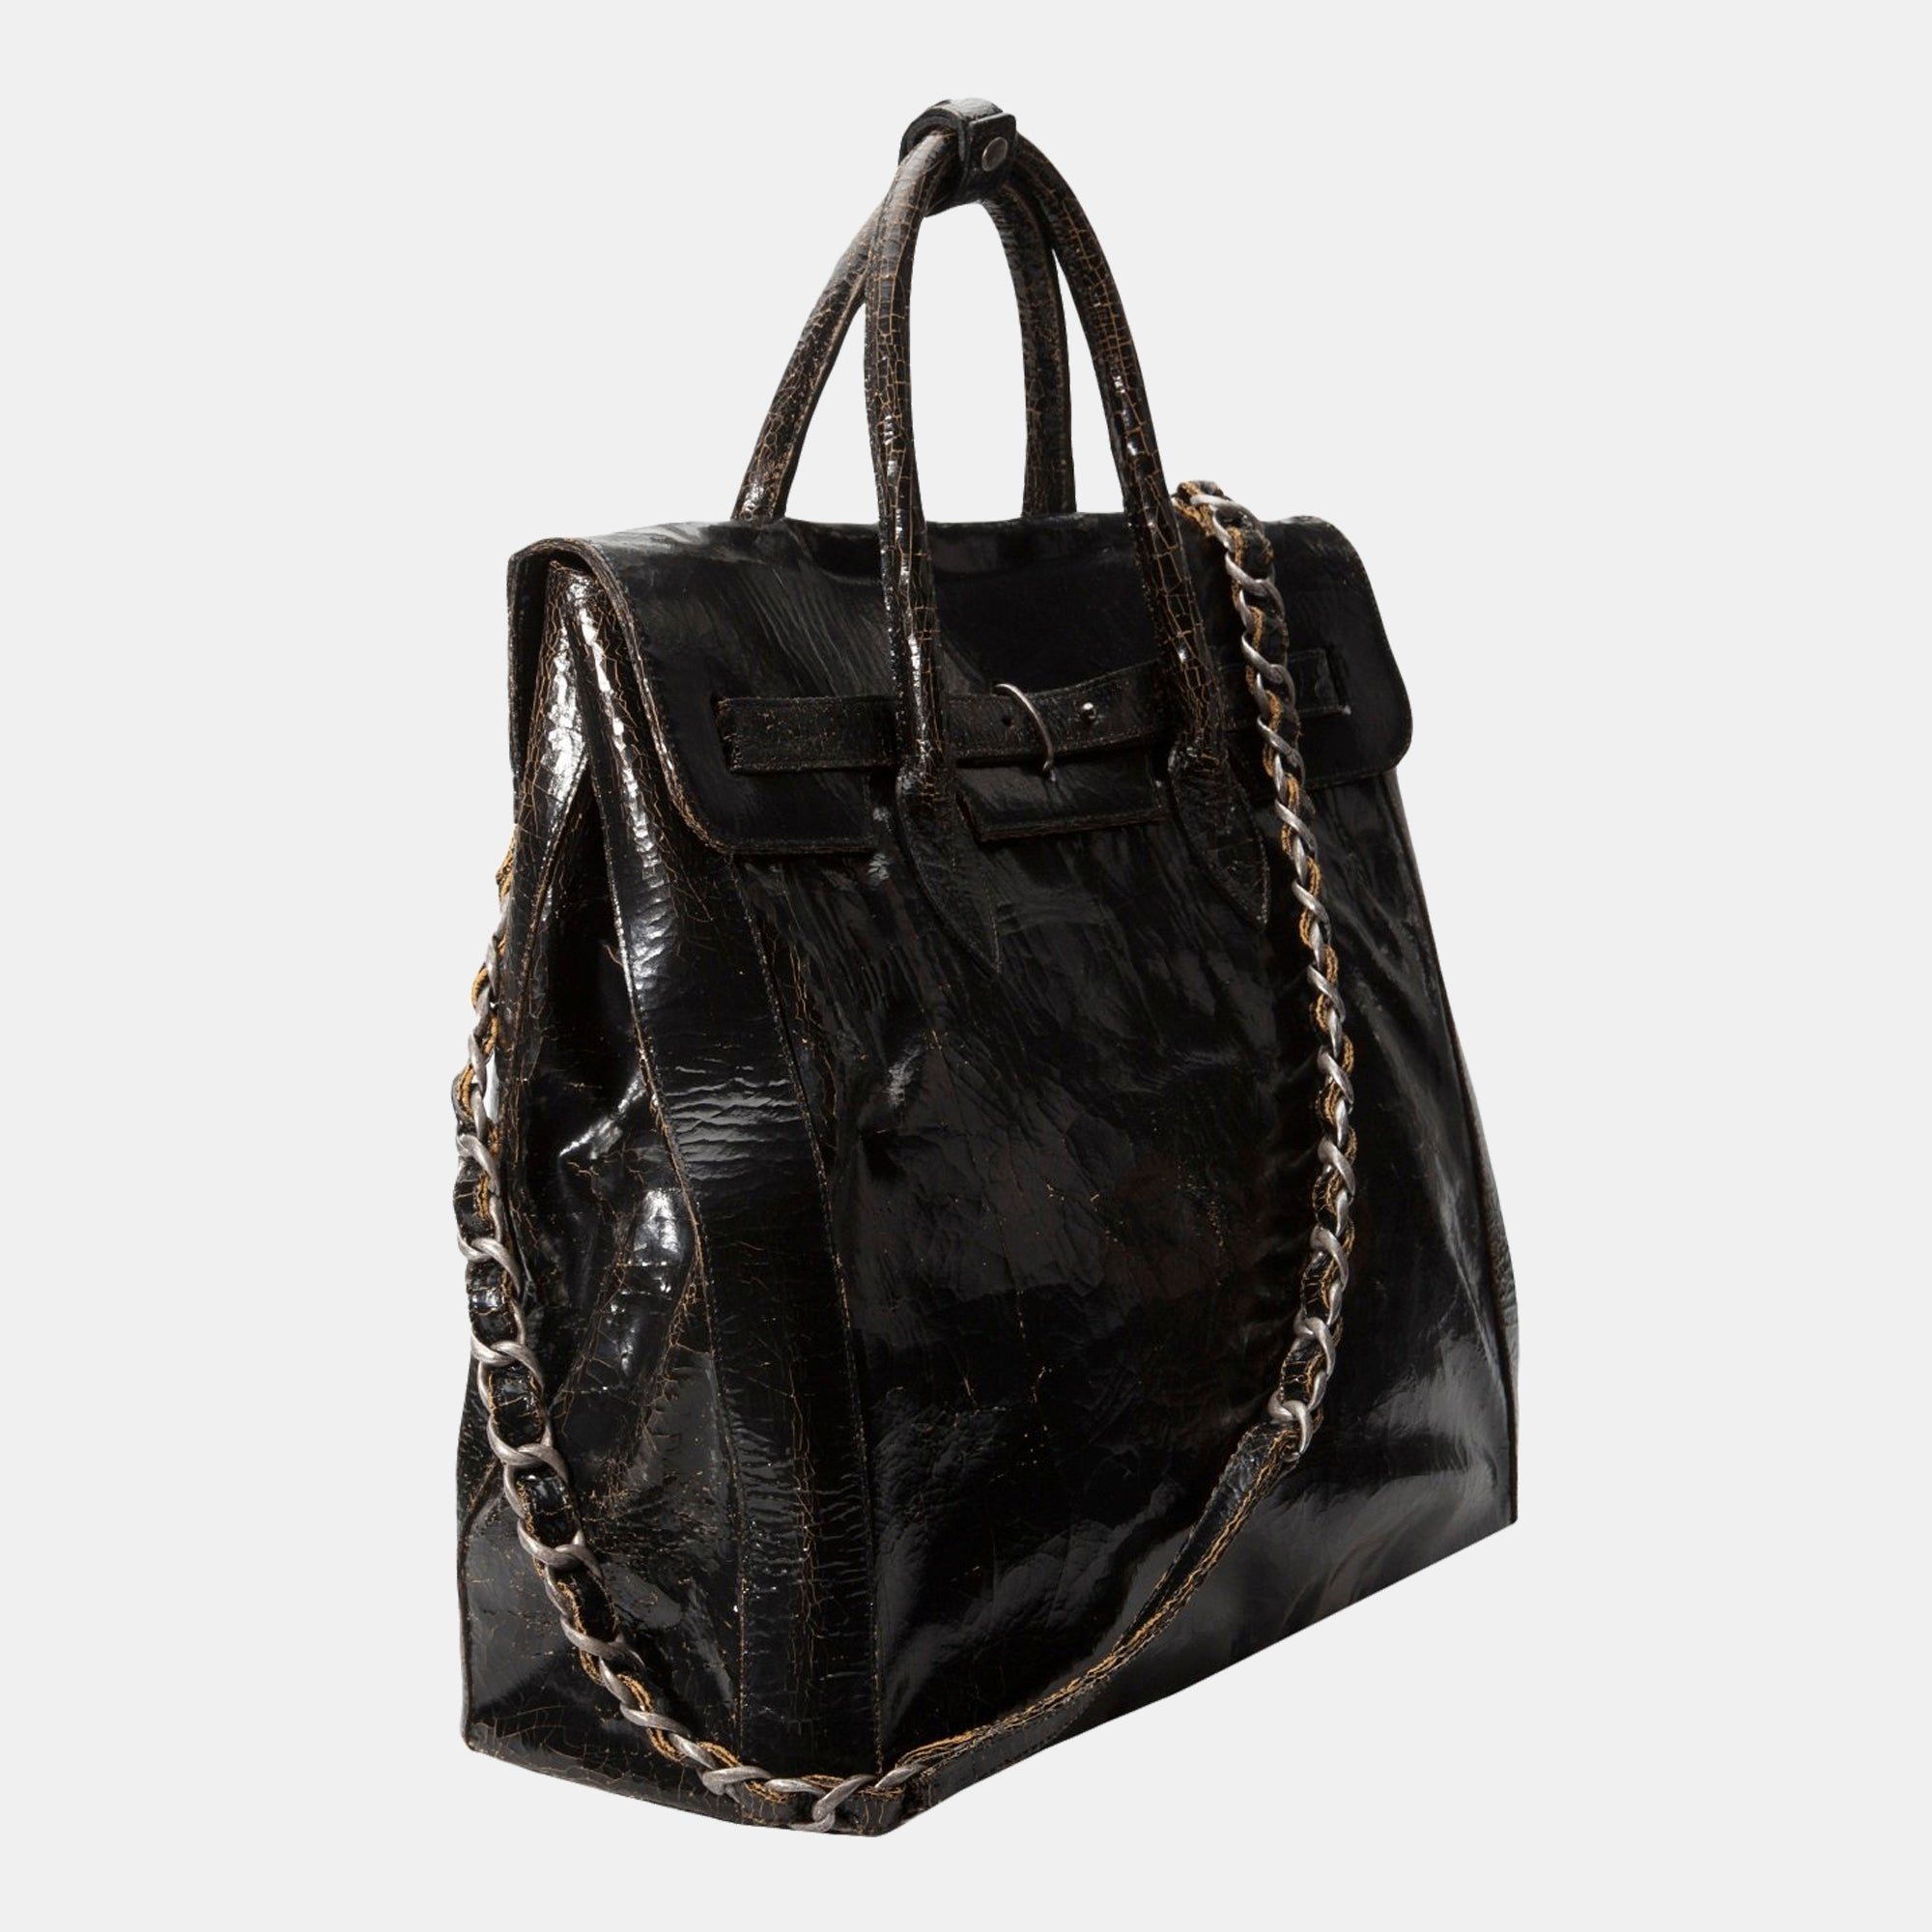 Midi Herman Bag Carryall